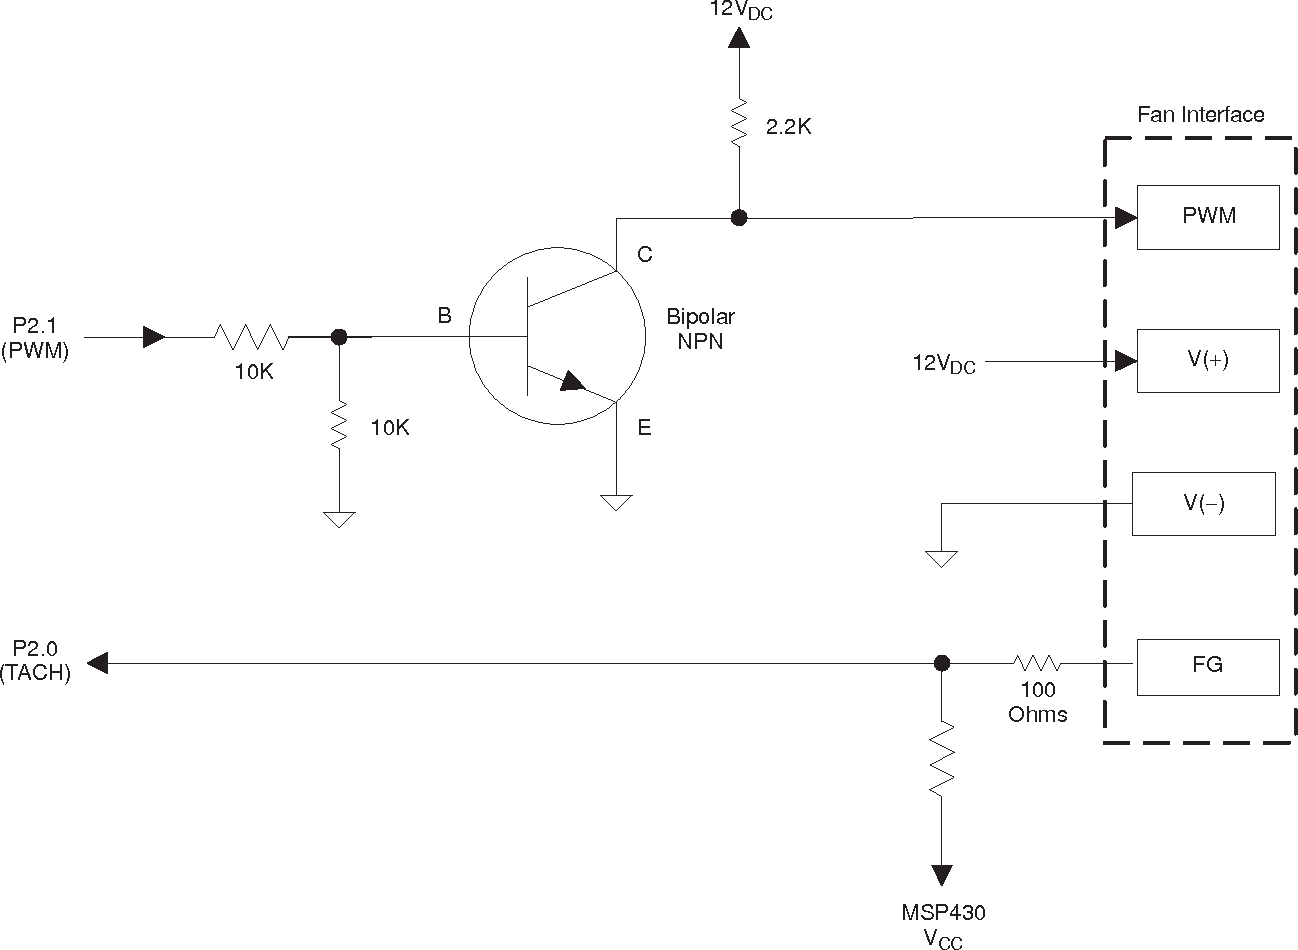 hight resolution of typical cooling fan interface circuitry 4 wires